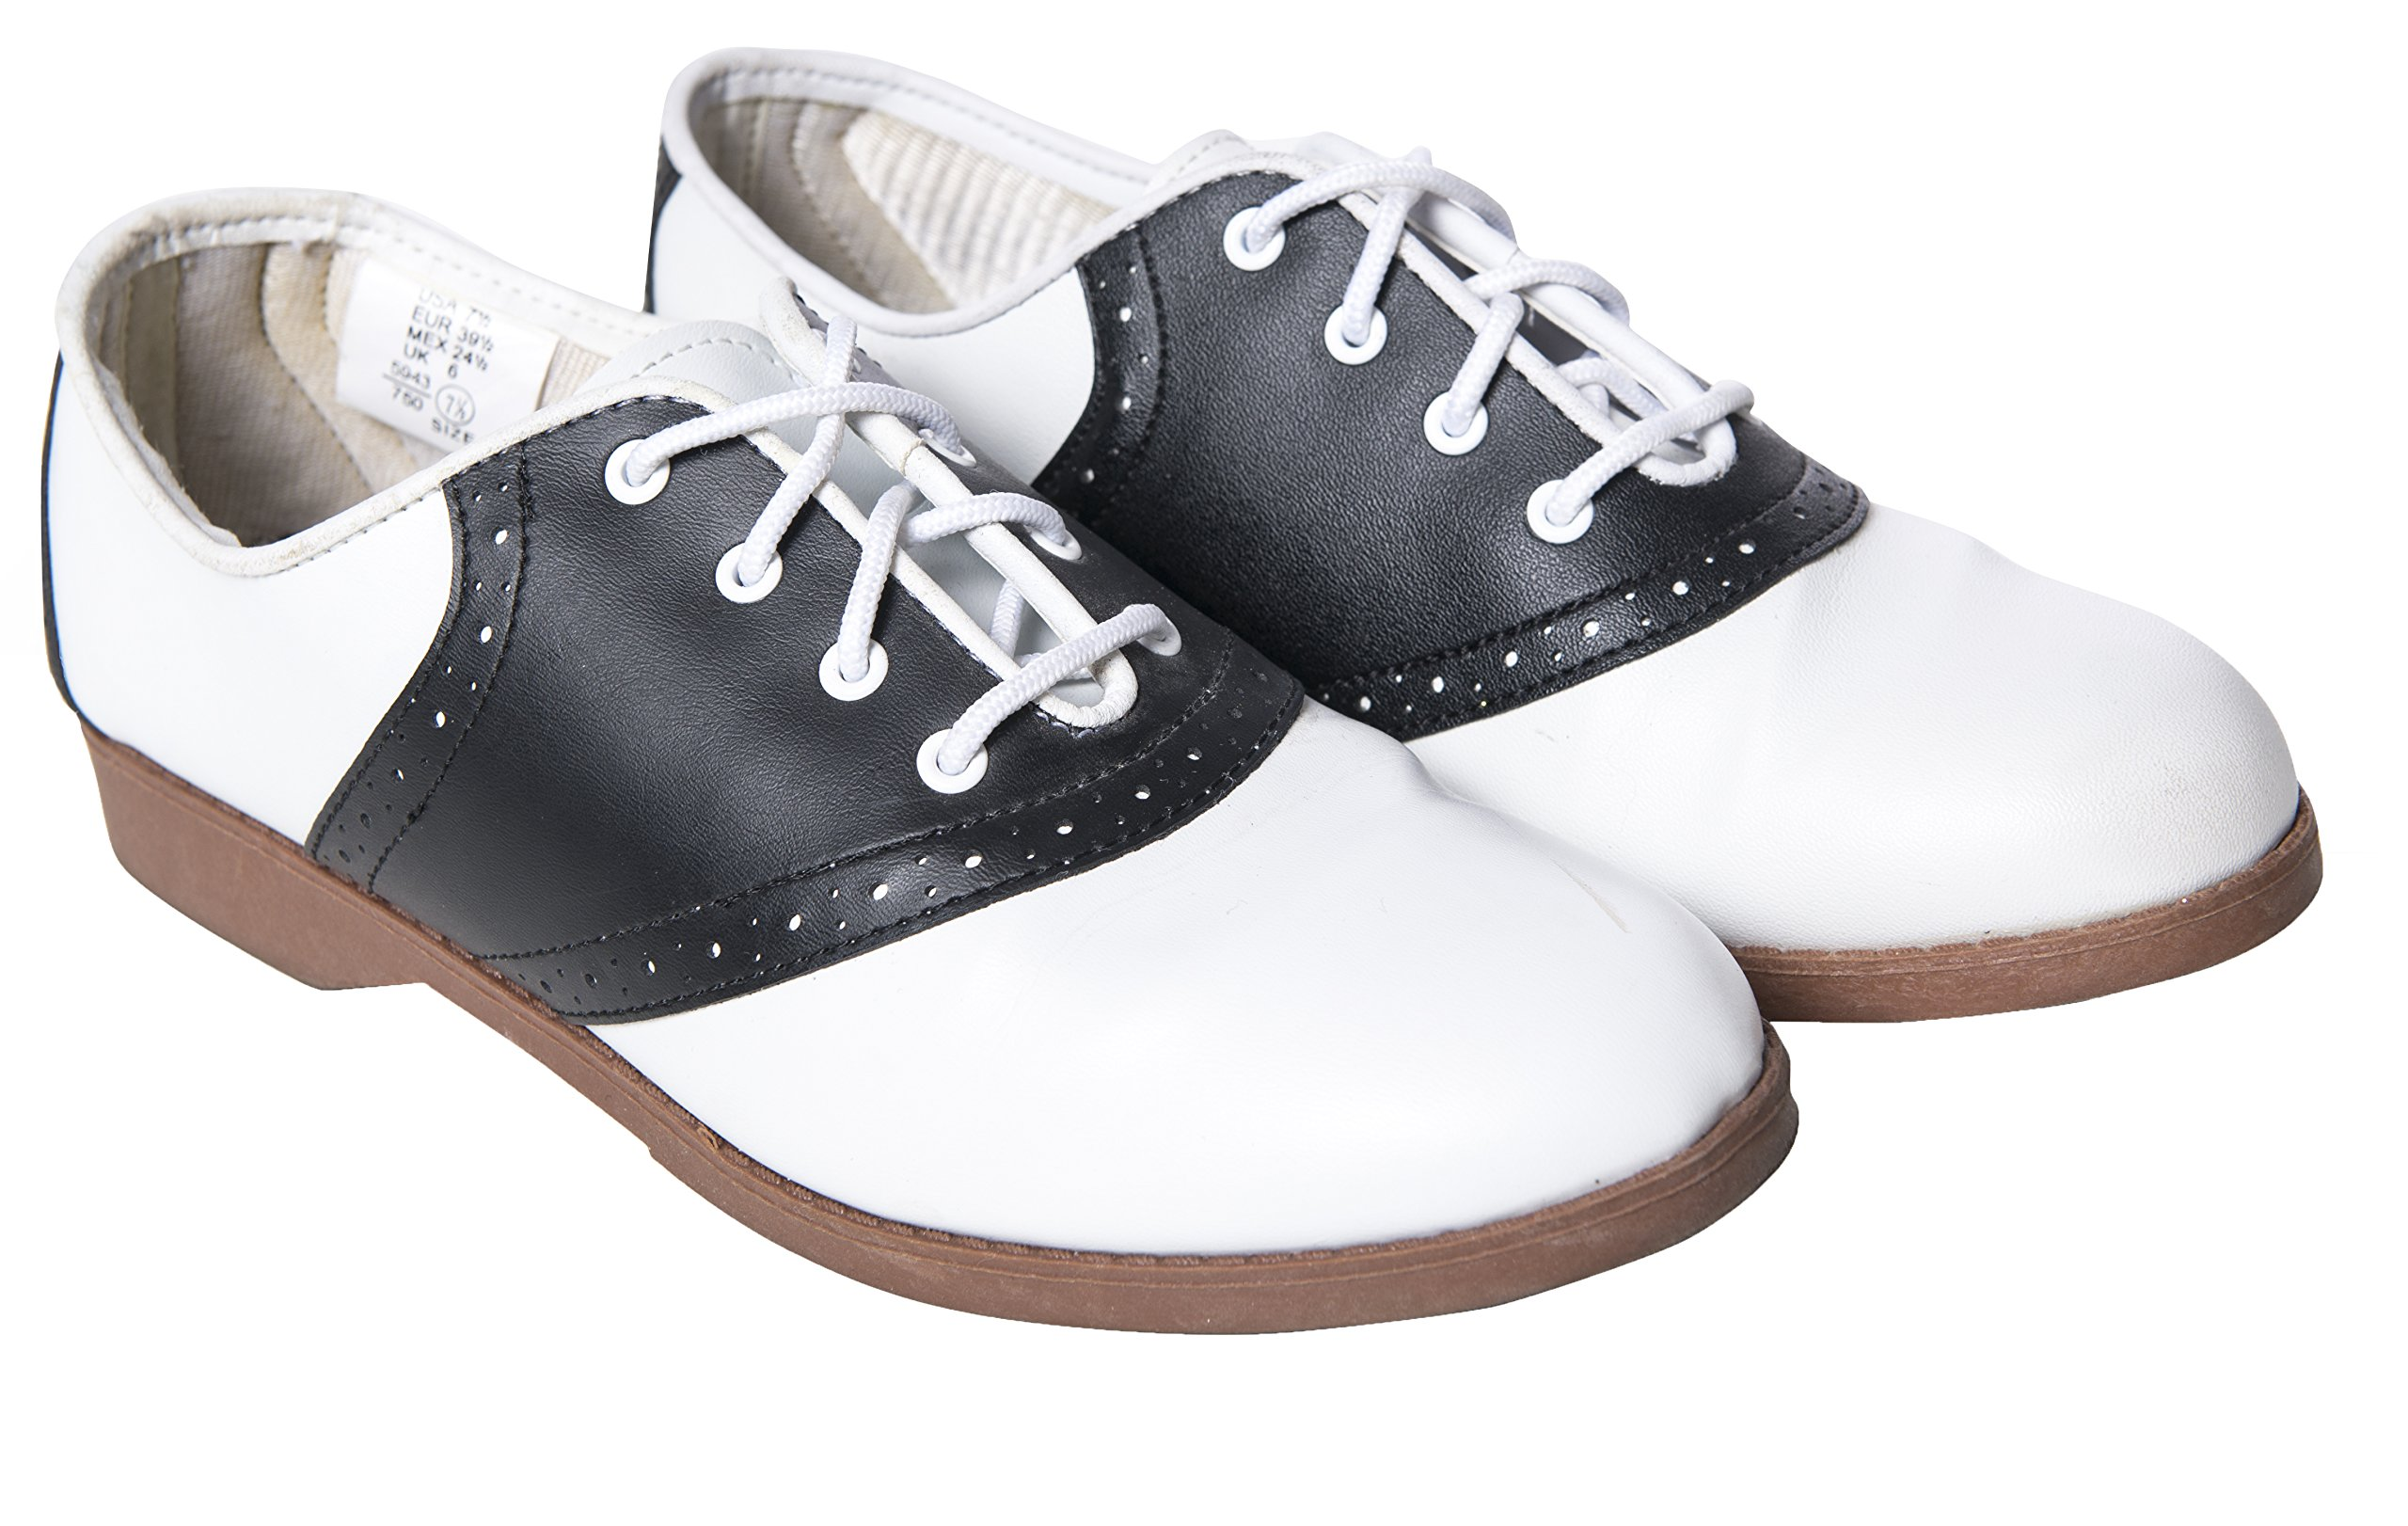 Hip Hop 50s Shop Womens Saddle Oxford Shoes 11